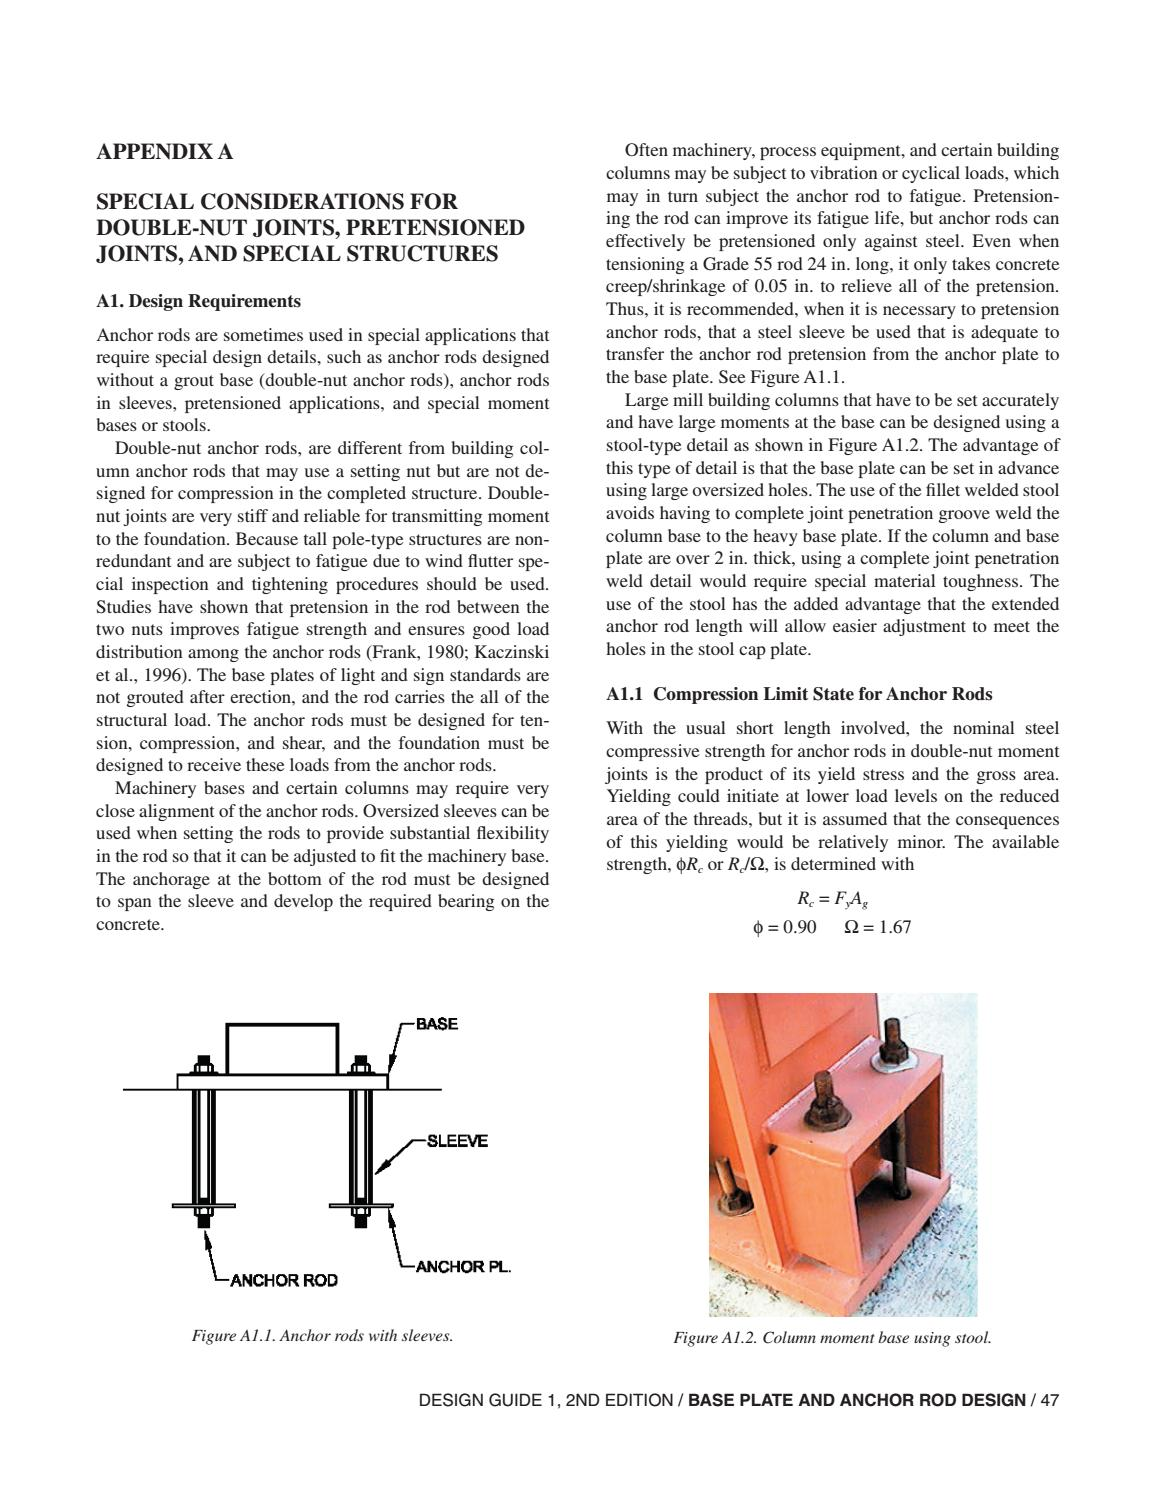 Aisc design guide 01 base plate and anchor rod design 2nd ed